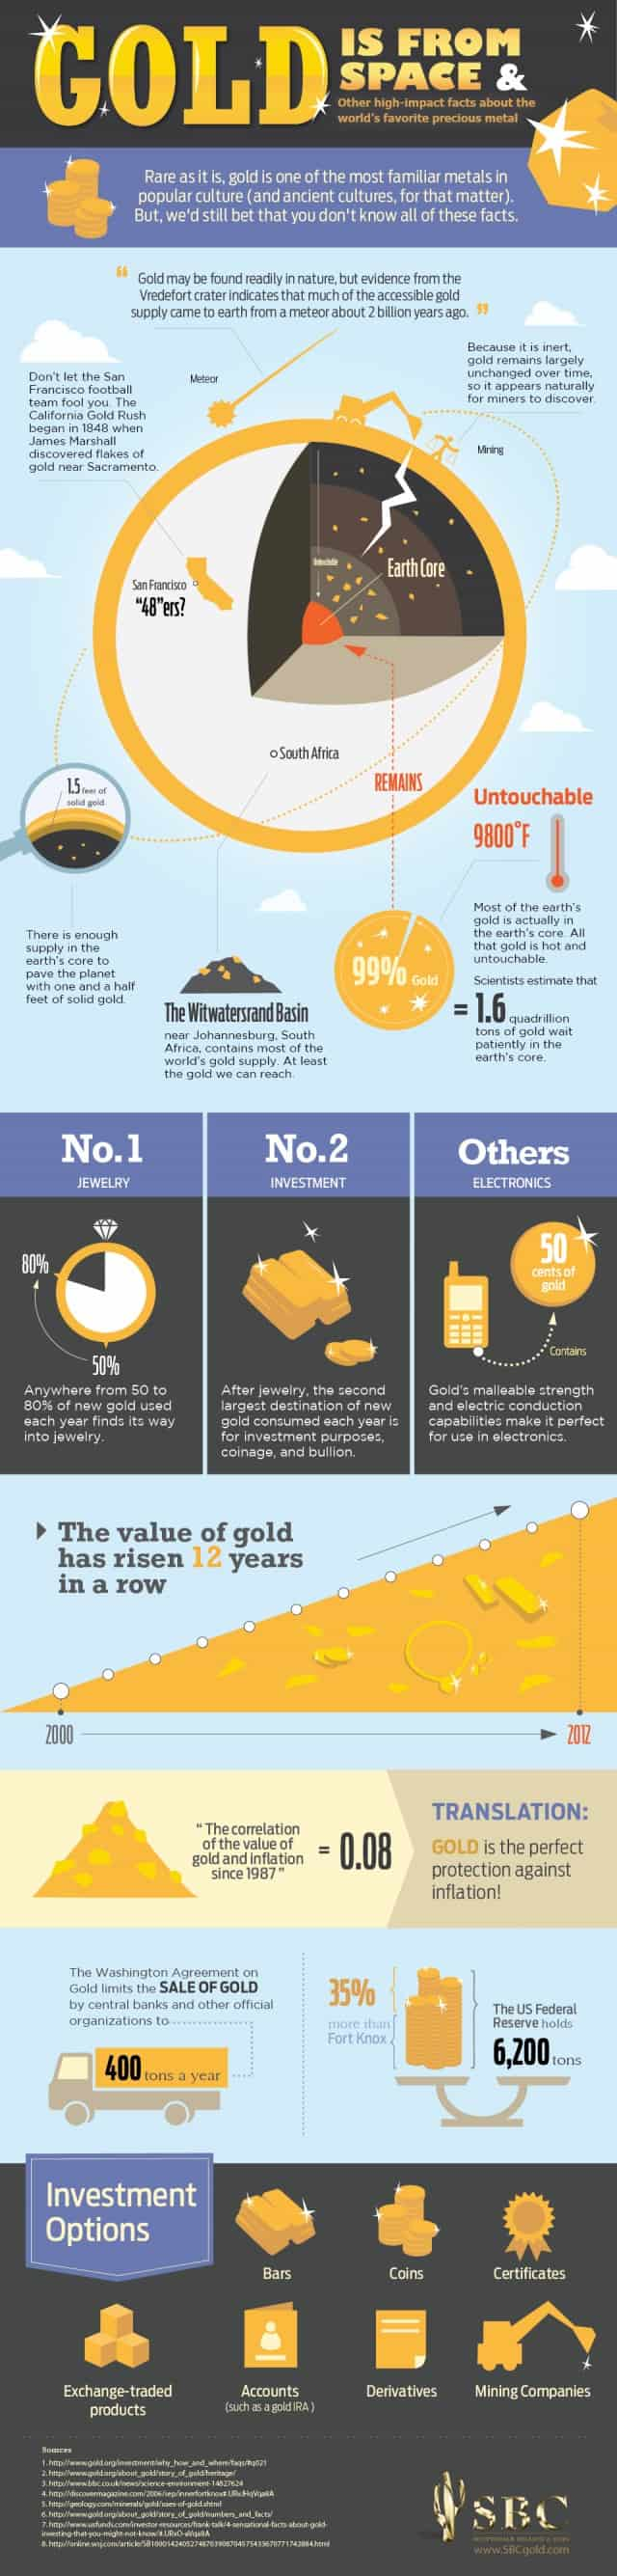 sbc-gold-facts-infographic-640x2670